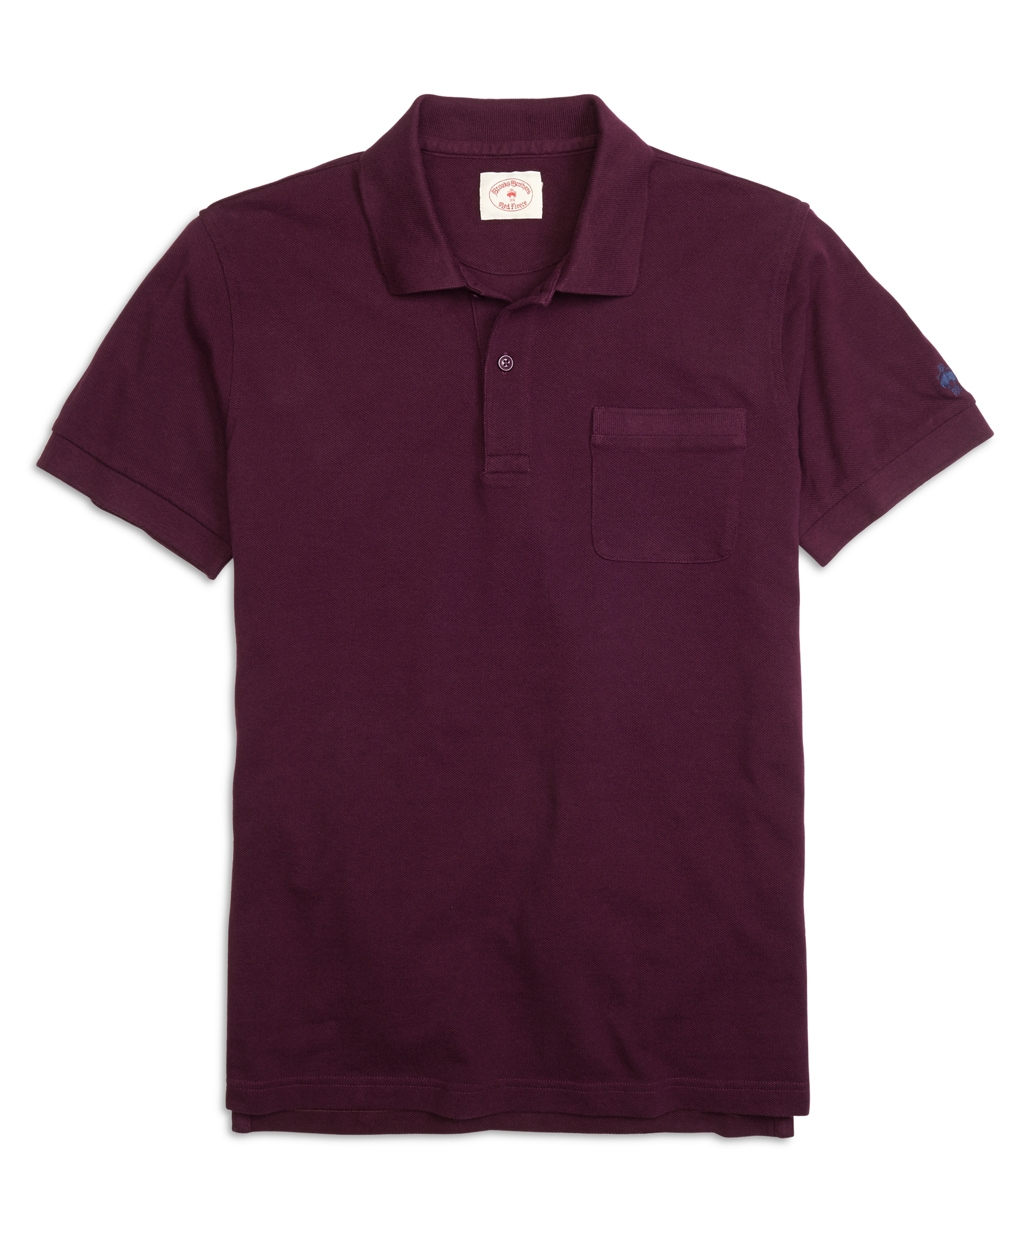 Brooks brothers purple solid pique polo shirt for men lyst Brooks brothers shirt size guide